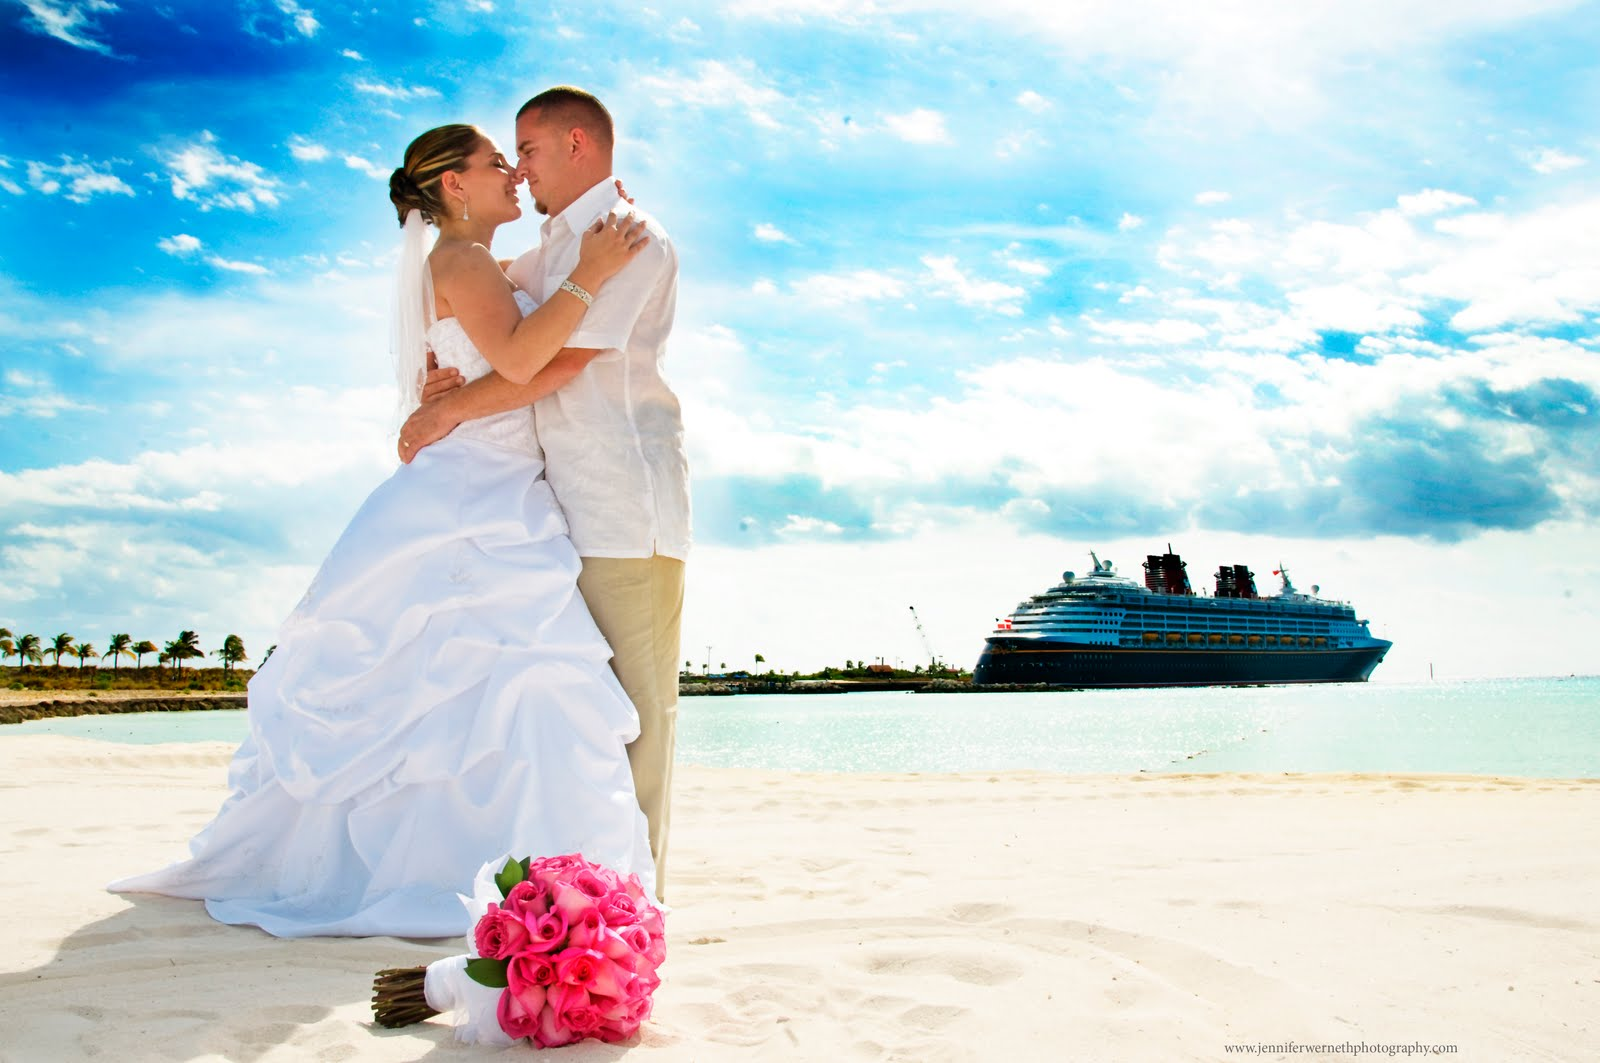 Wonderful Cruise Wedding  Cruise Wedding  A2zWeddingCards